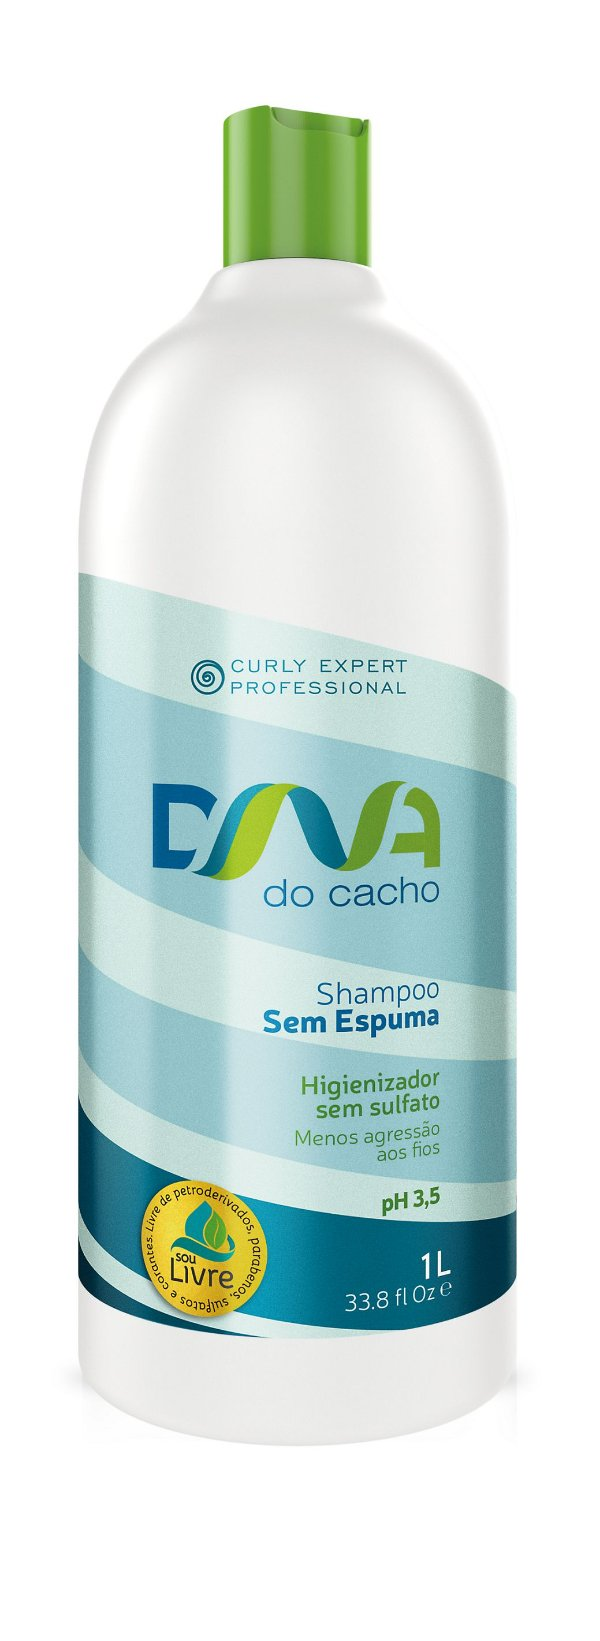 DNA do Cacho Shampoo Sem Espuma 1L - Salon Embelleze